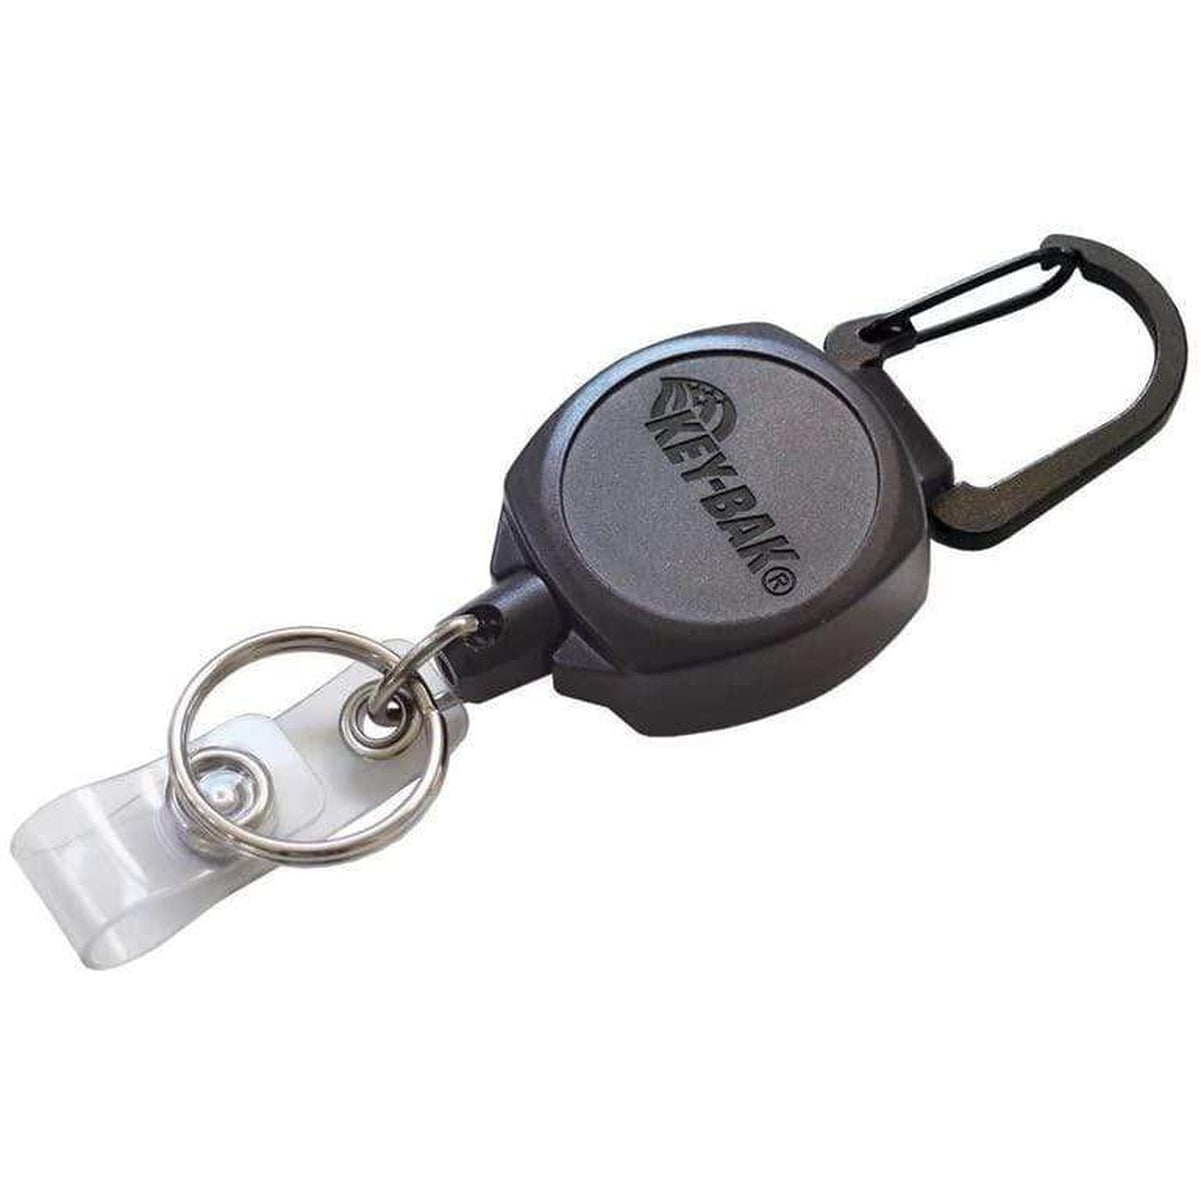 Key-Bak SIDEKICK ID Badge Reel with Key Ring (0KB1-0A21)